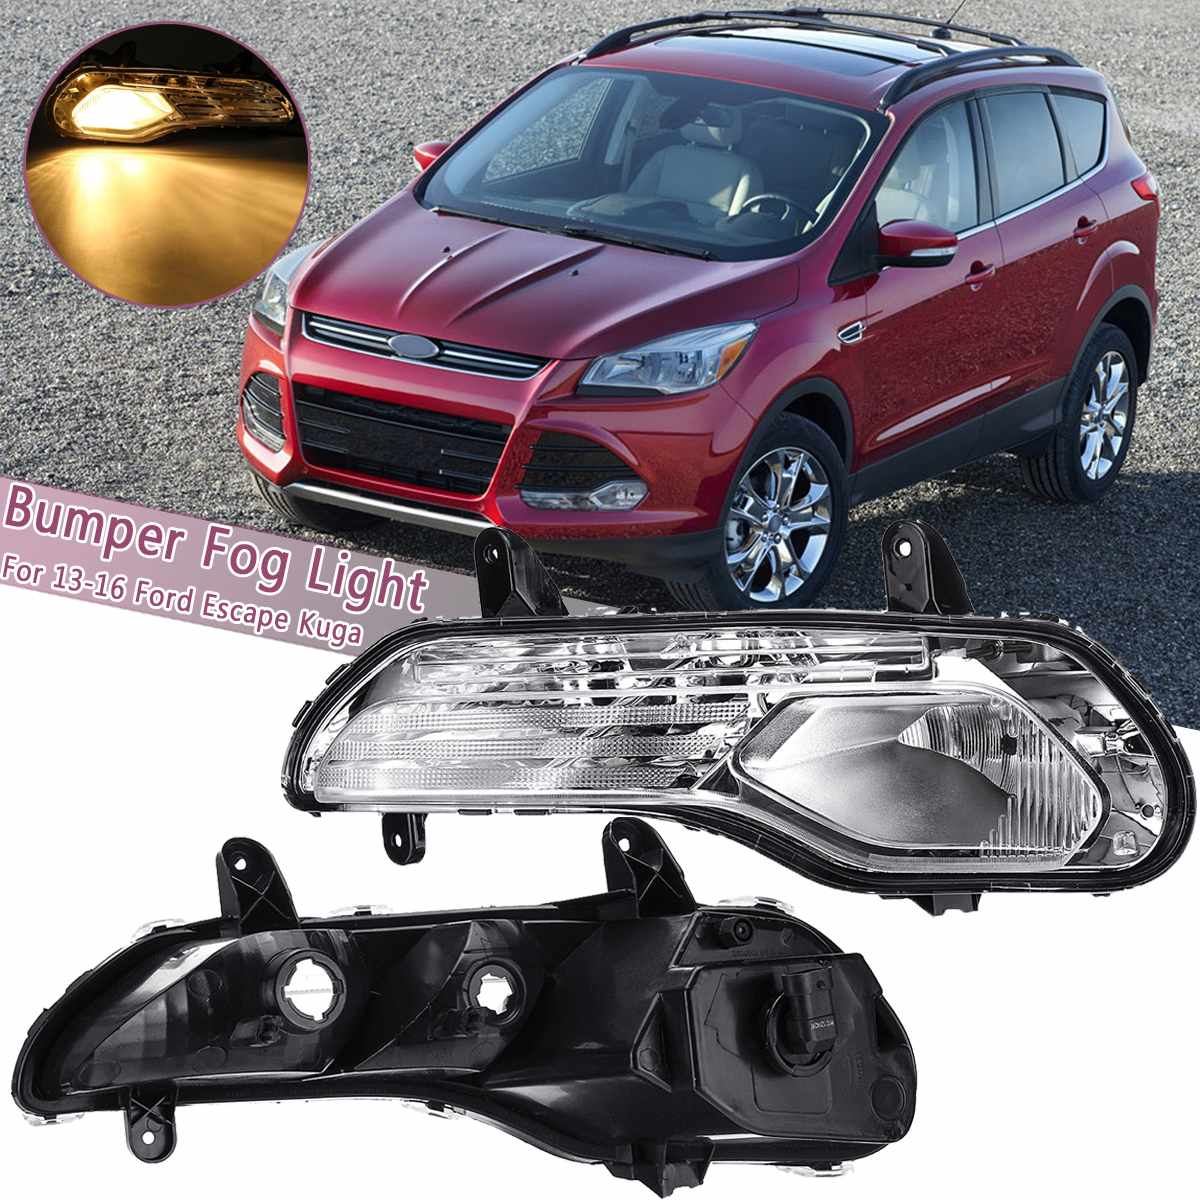 Left/Right Front Bumper Fog Lights Lamps turn signal light with Halogen bulbs For Ford Escape Kuga 2013 2014 2015 2016Left/Right Front Bumper Fog Lights Lamps turn signal light with Halogen bulbs For Ford Escape Kuga 2013 2014 2015 2016